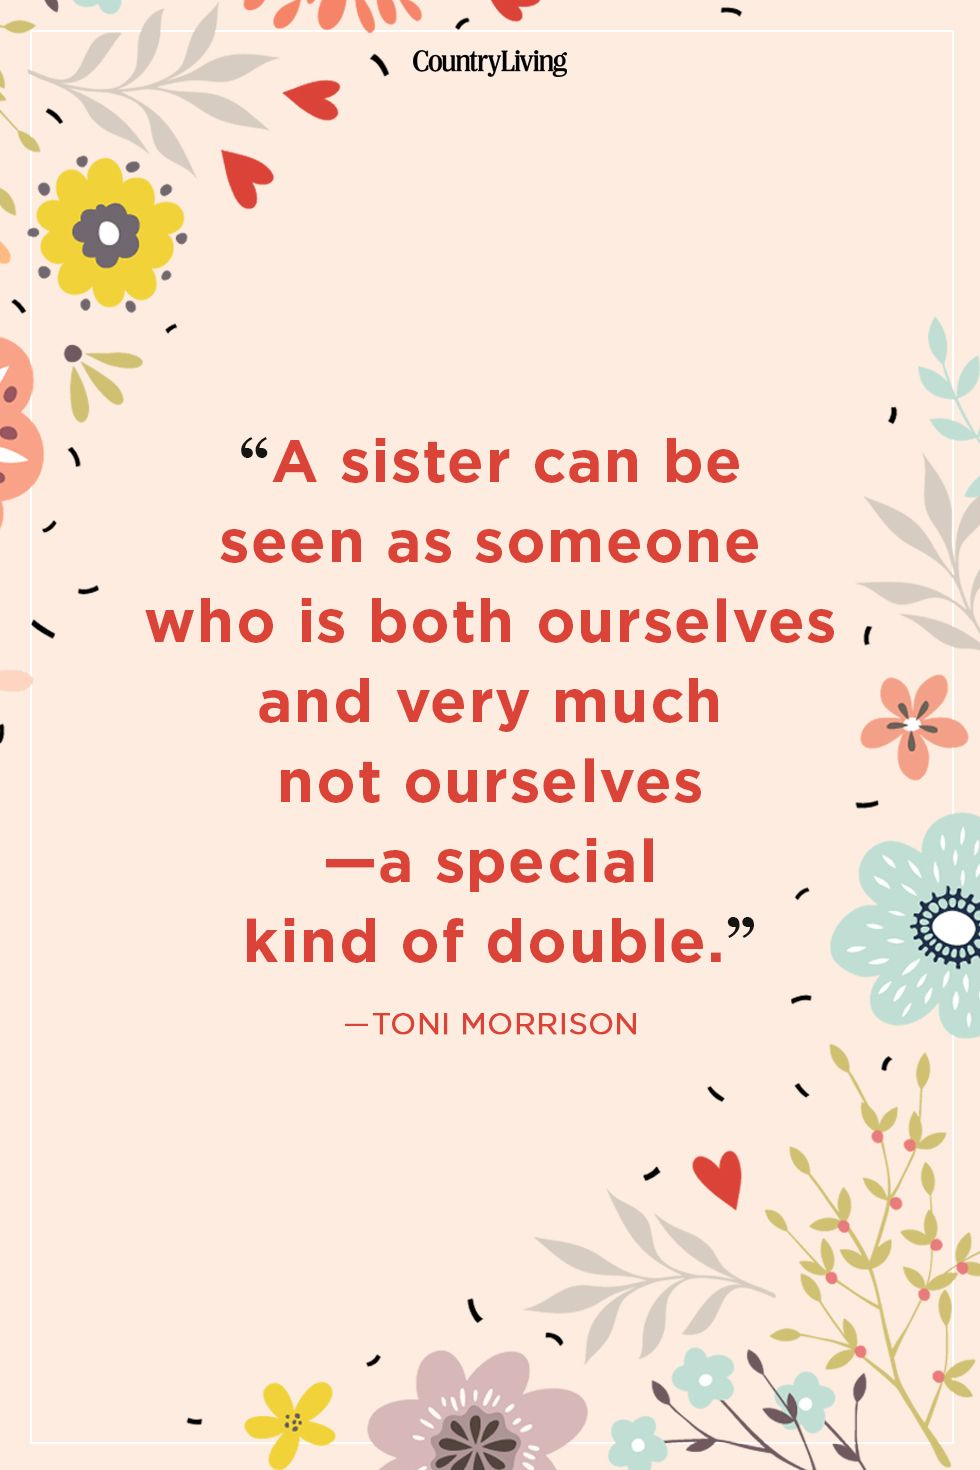 8 Best Sister Quotes - Quotes About Sisters